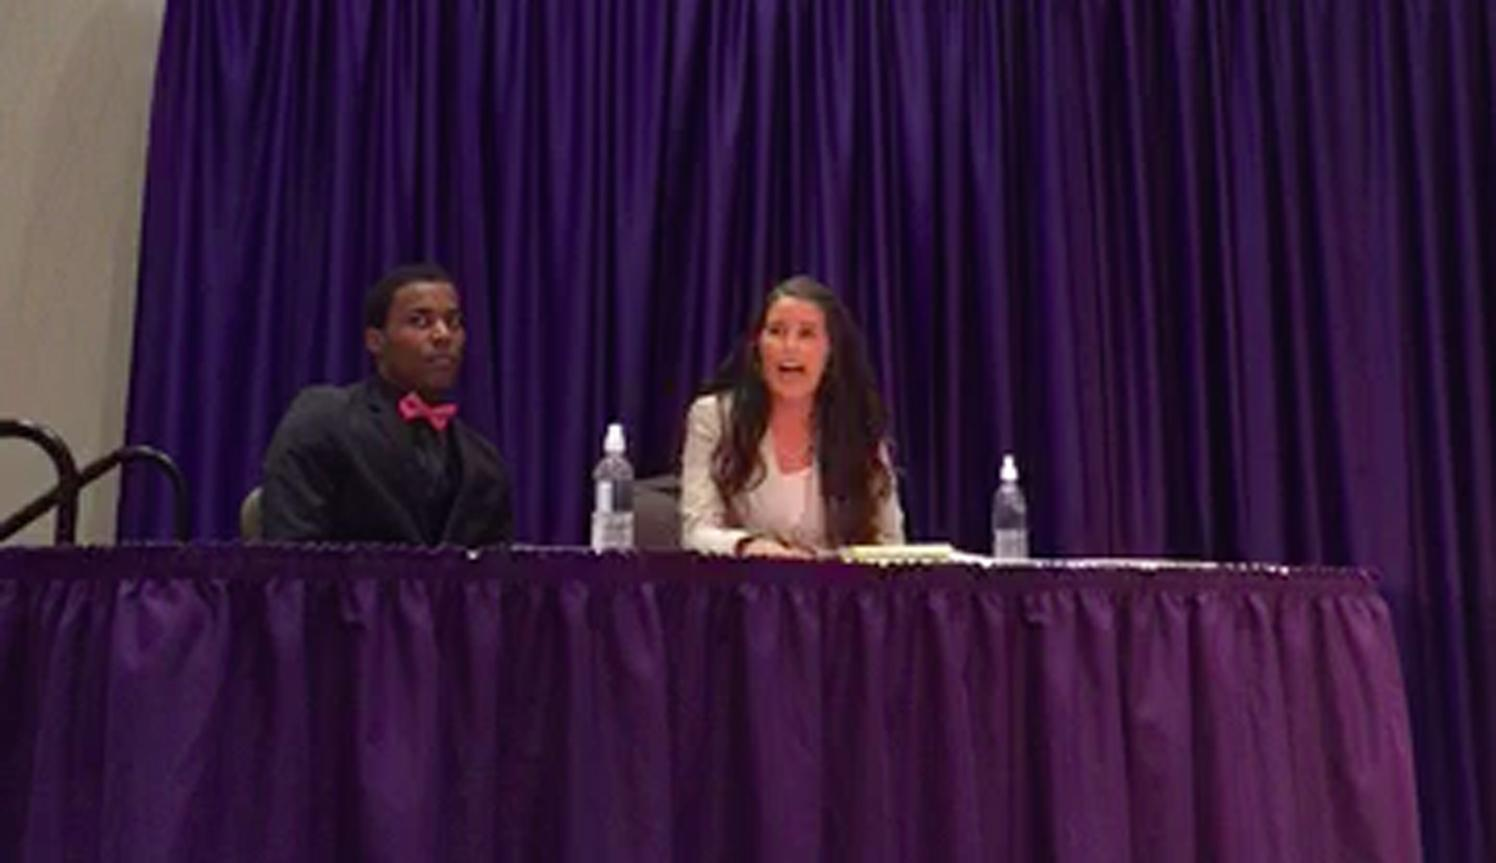 Shelby Whitson and Donald Griffin, the advocates for campus carry during the debate, answer questions from the audience. (Live stream by Alex Gaffigan)